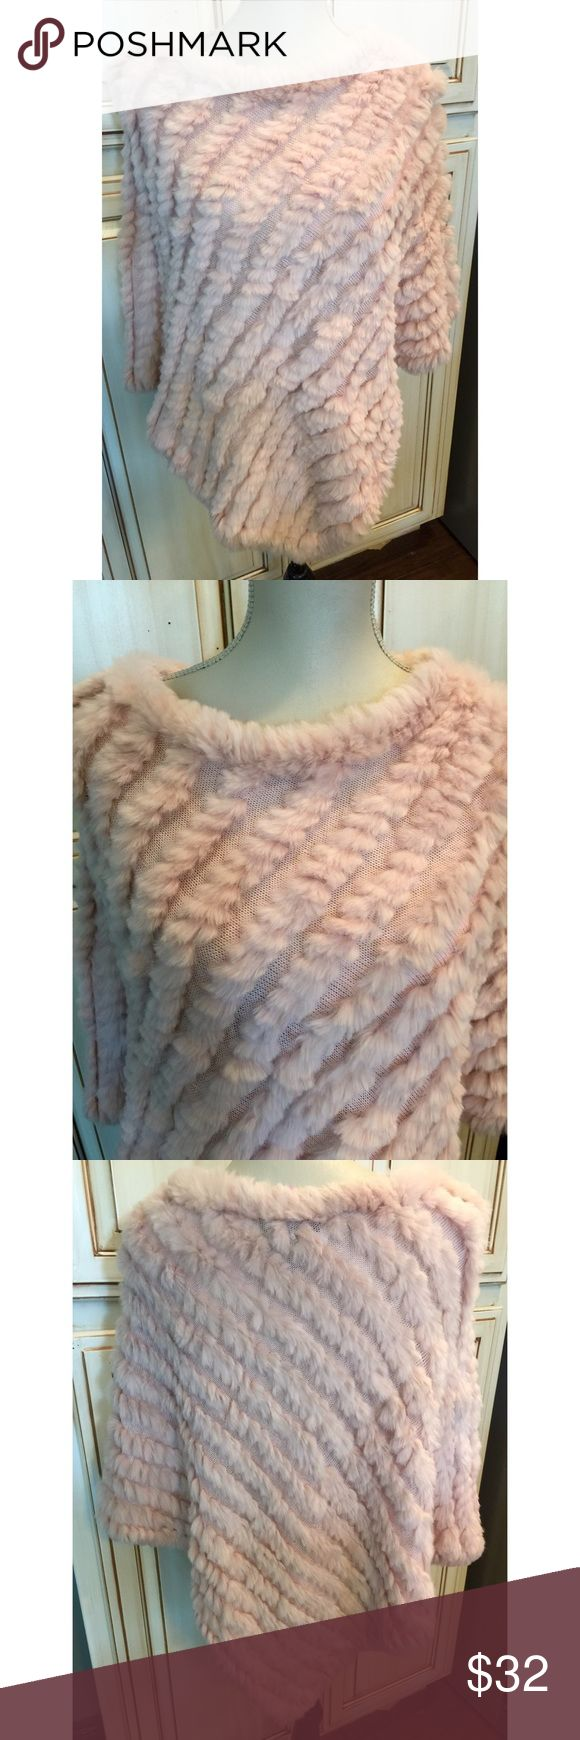 Studio 512 Blush Rabbit Fur Poncho 💕 Studio 512 one size fits all blush tinted rabbit fur poncho. So soft and dainty! Love this! 💕 Studio 512 Tops